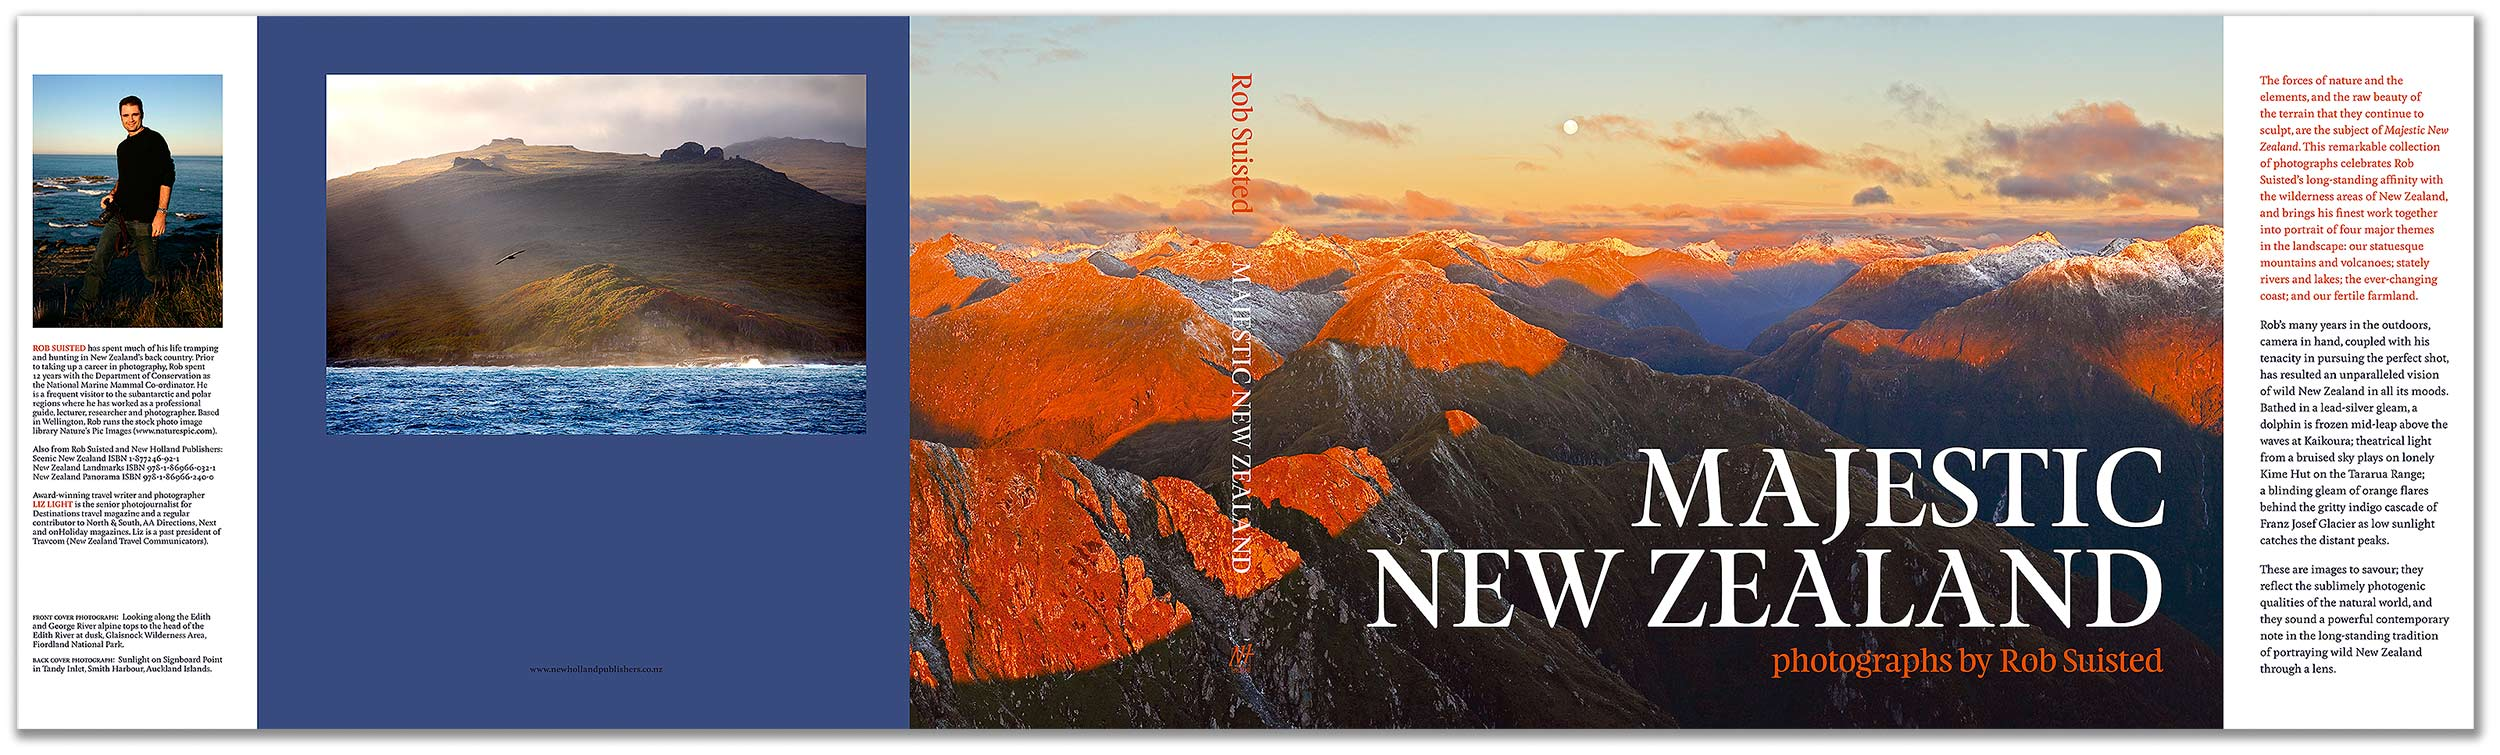 Book Covering Nz : Coffee table book of new zealand by rob suisted well